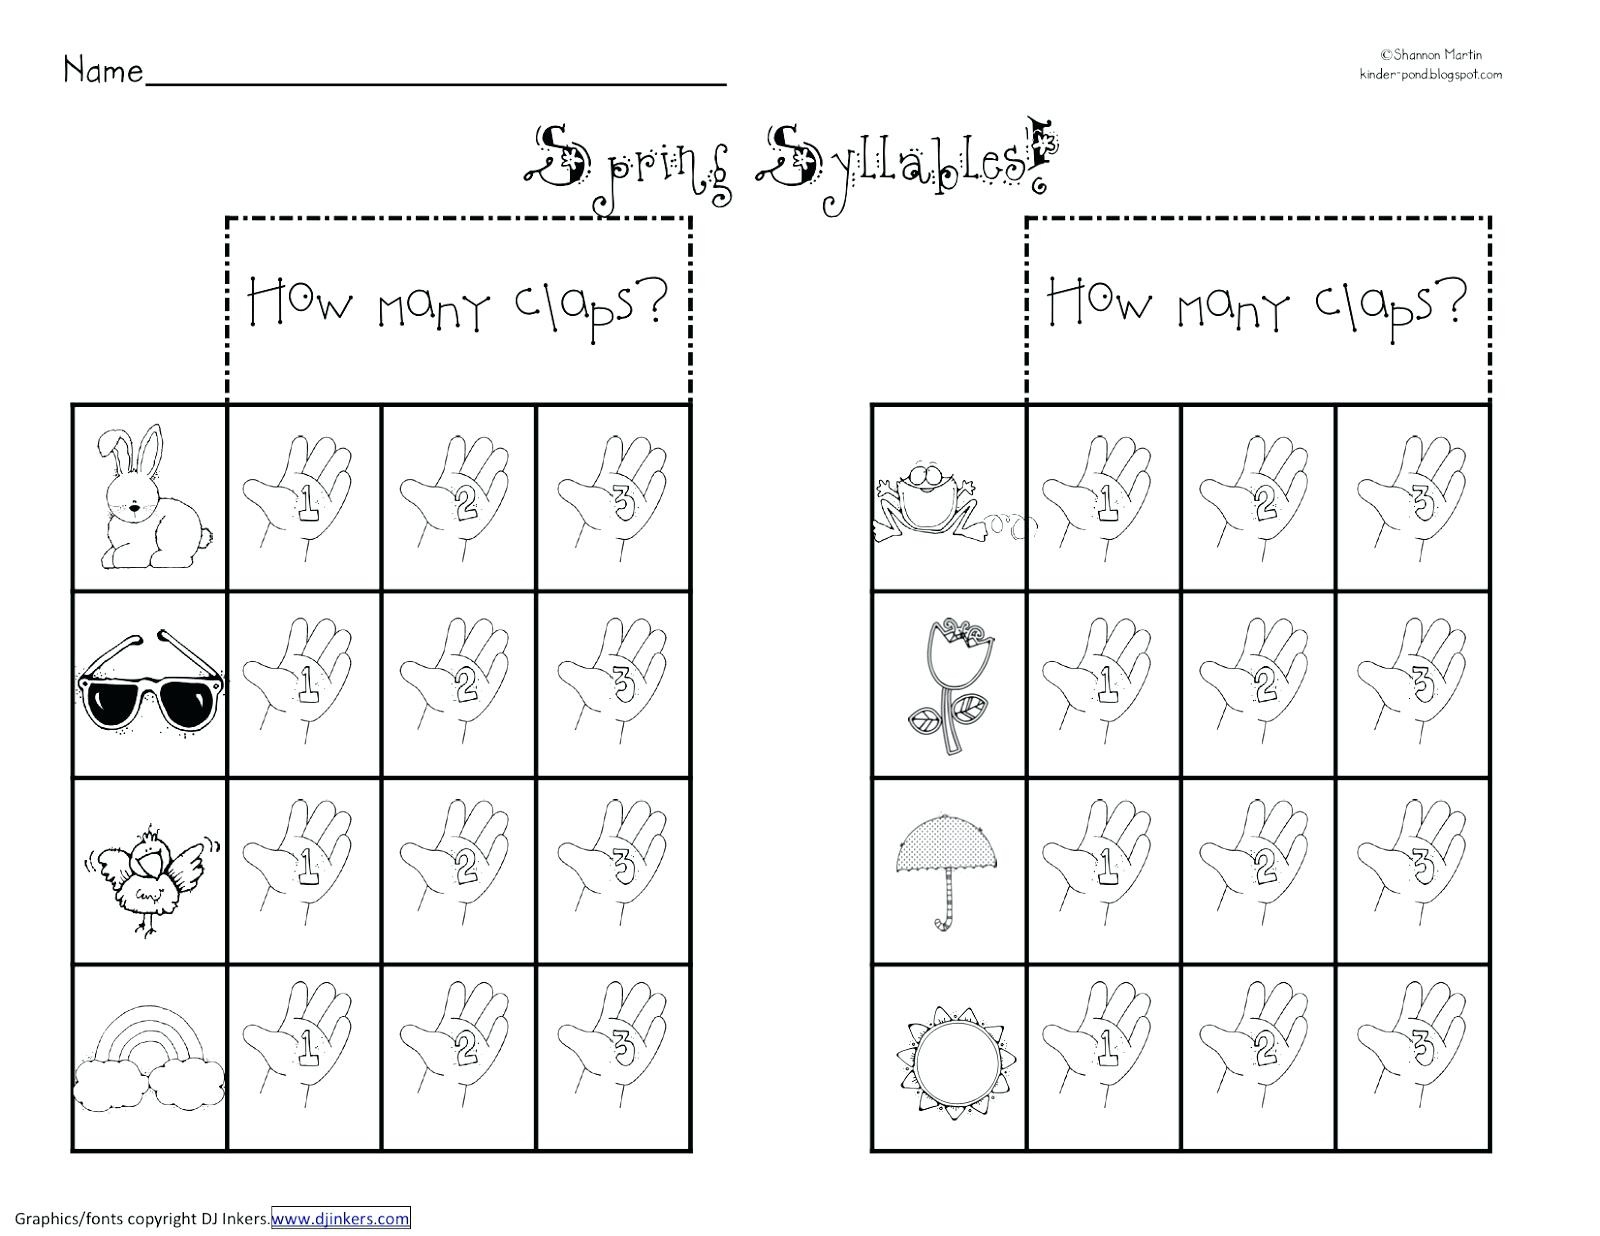 Syllable Worksheets 2Nd Grade Open Syllable Worksheets Fourth Grade - Free Printable Open And Closed Syllable Worksheets